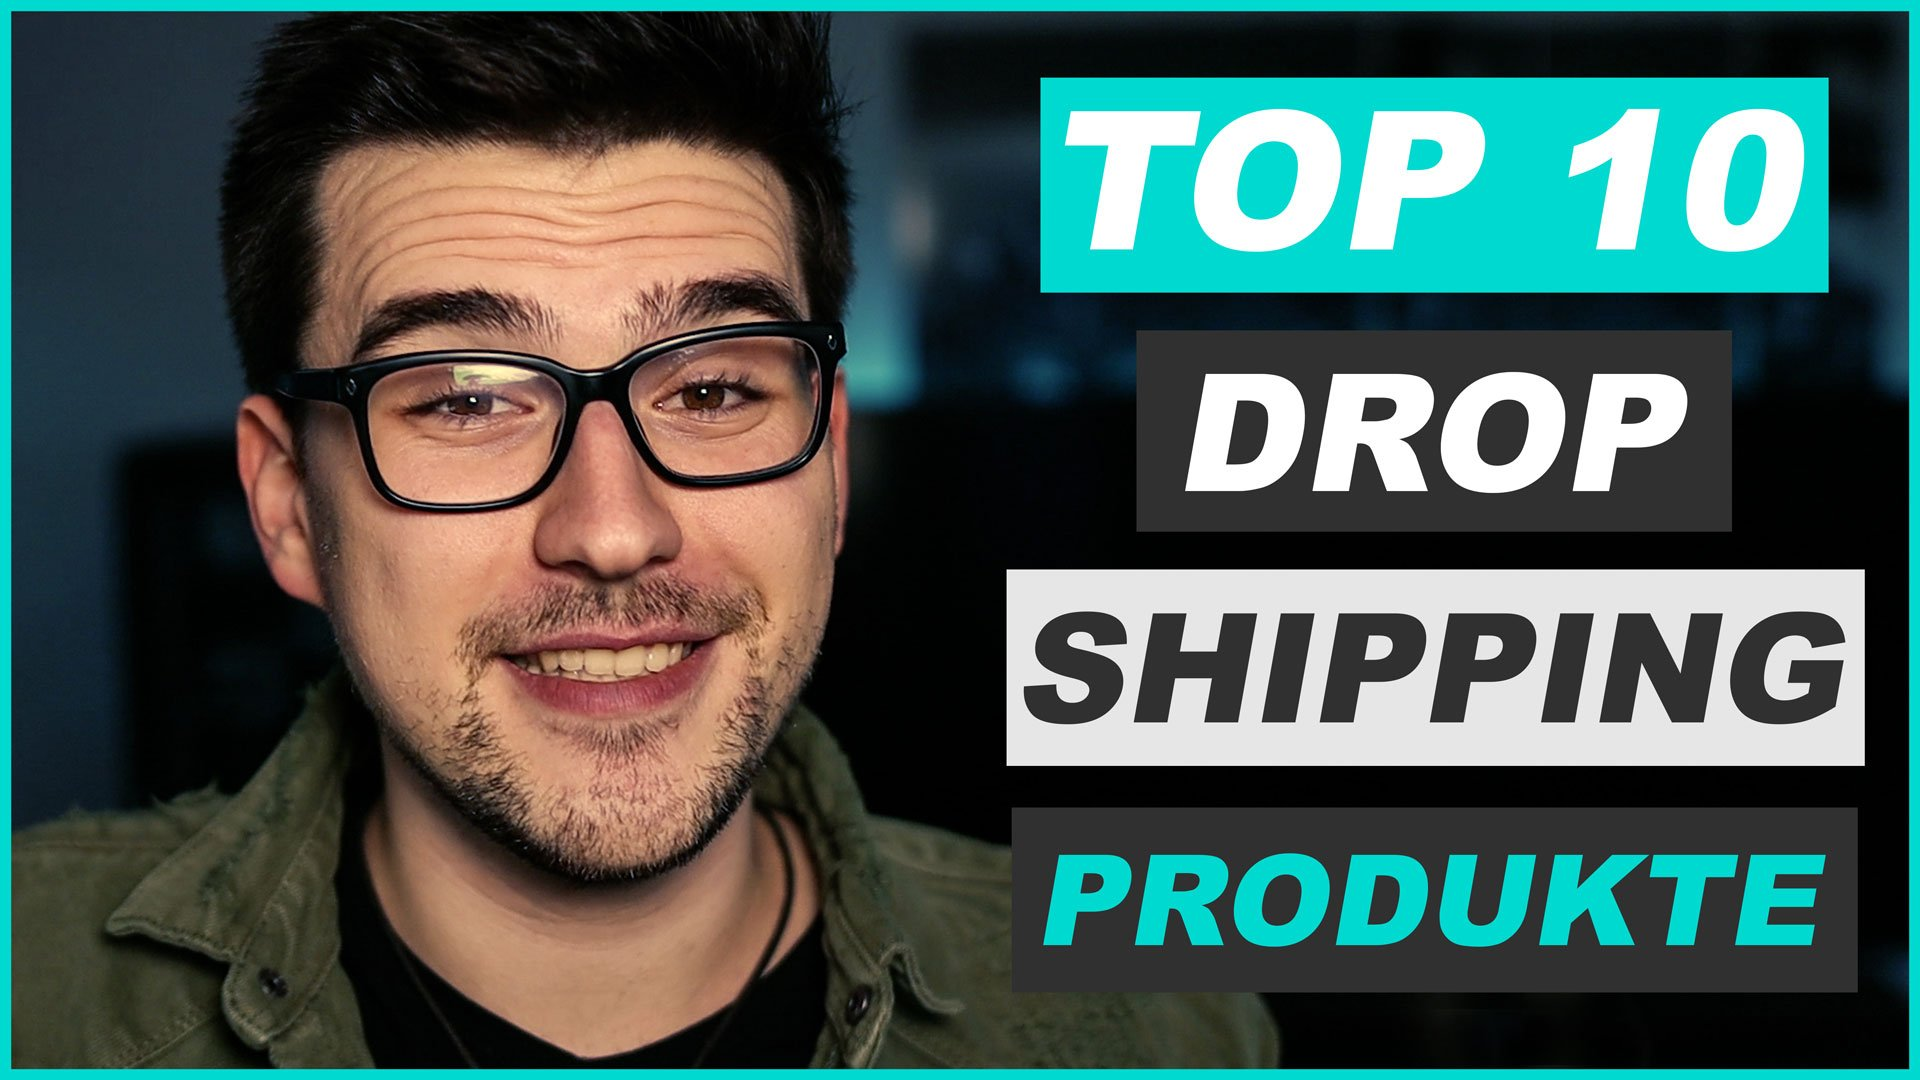 Top 10 Shopify Dropshipping Products For Your Online Shop